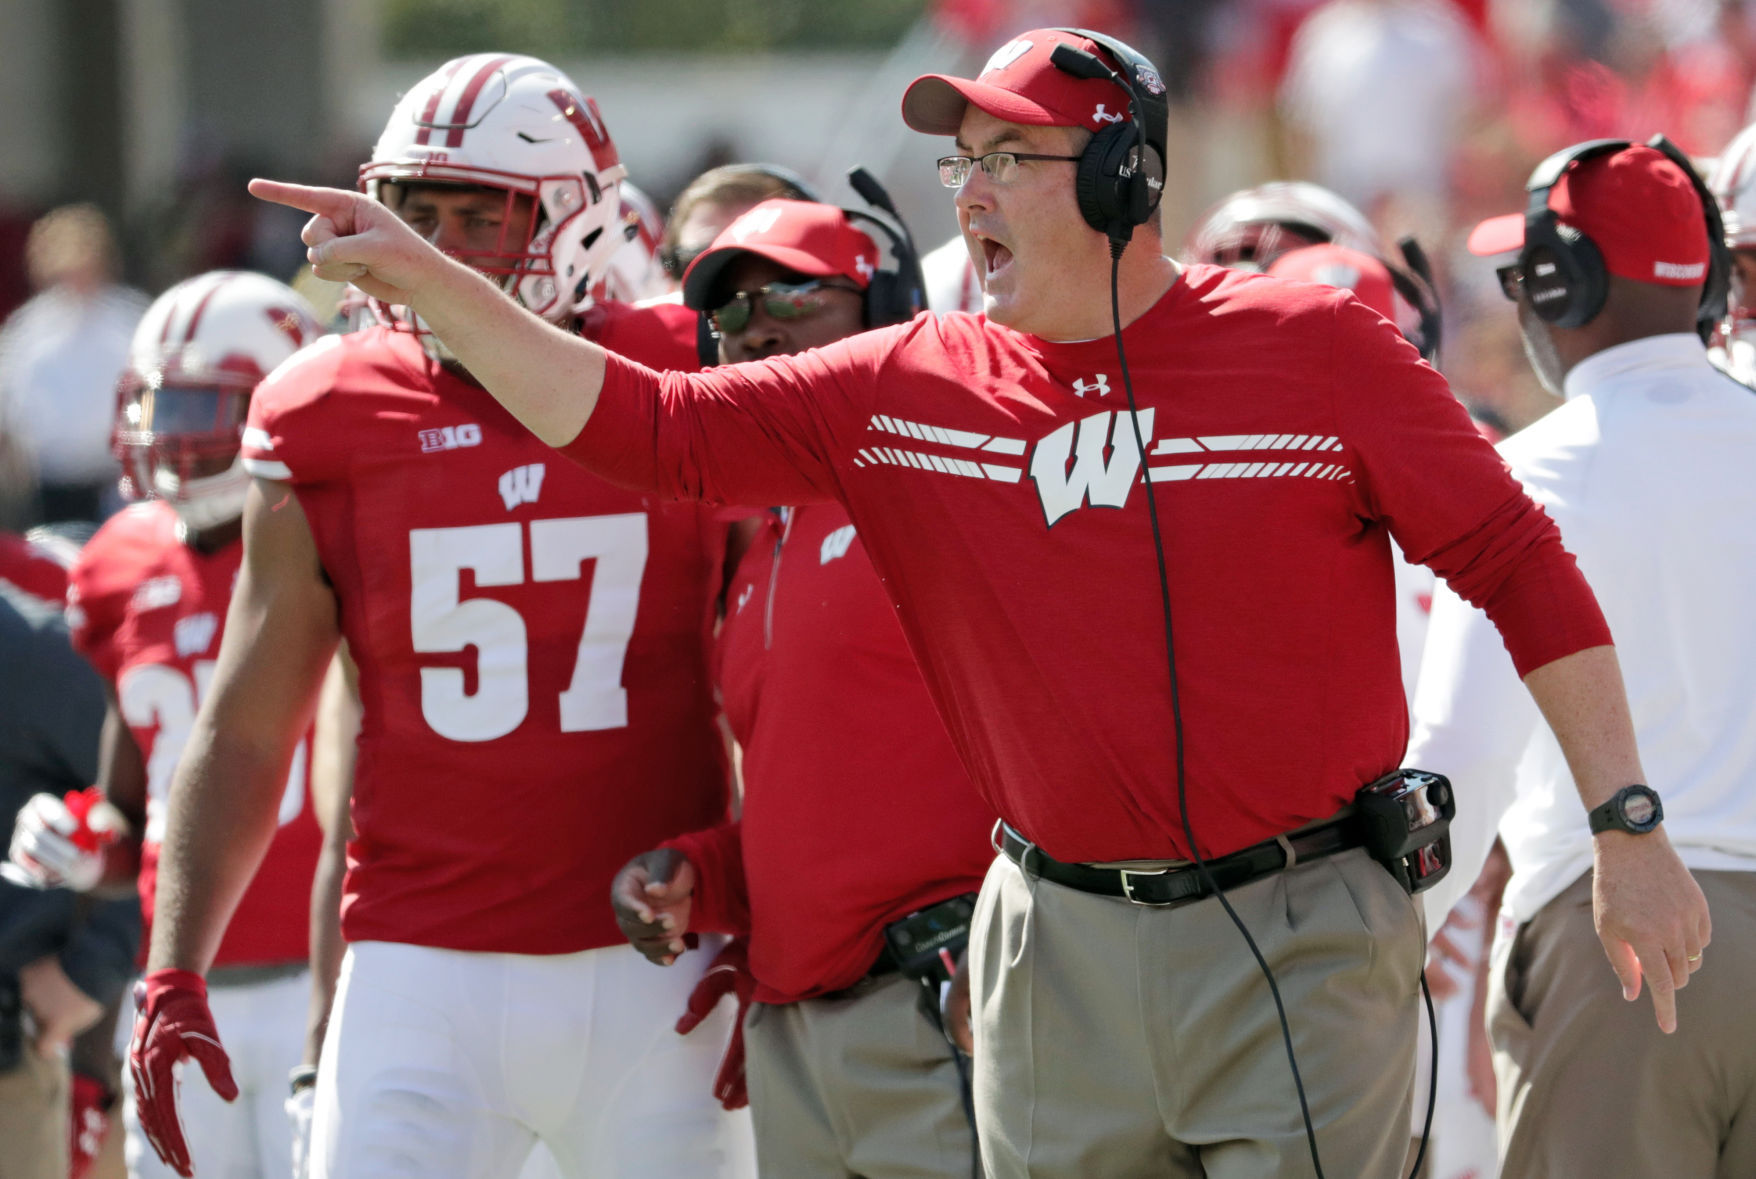 Wisconsin defense not satisfied with performance against Florida Atlantic